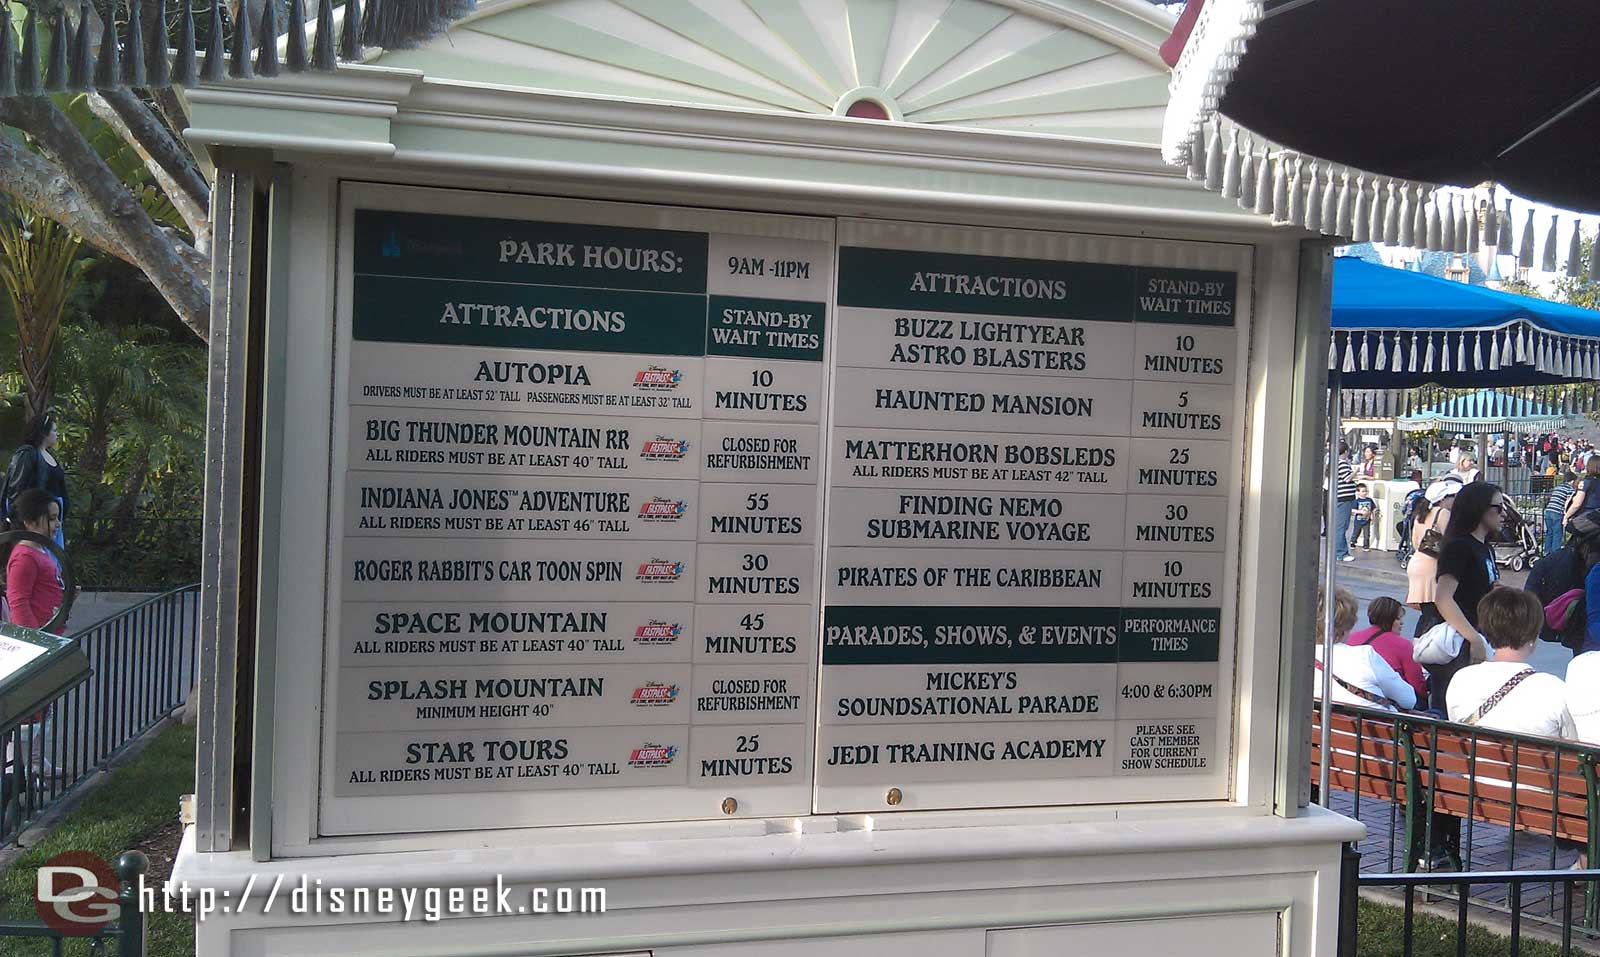 Current #Disneyland waits, going up as more guests finish school and work for the week and arrive